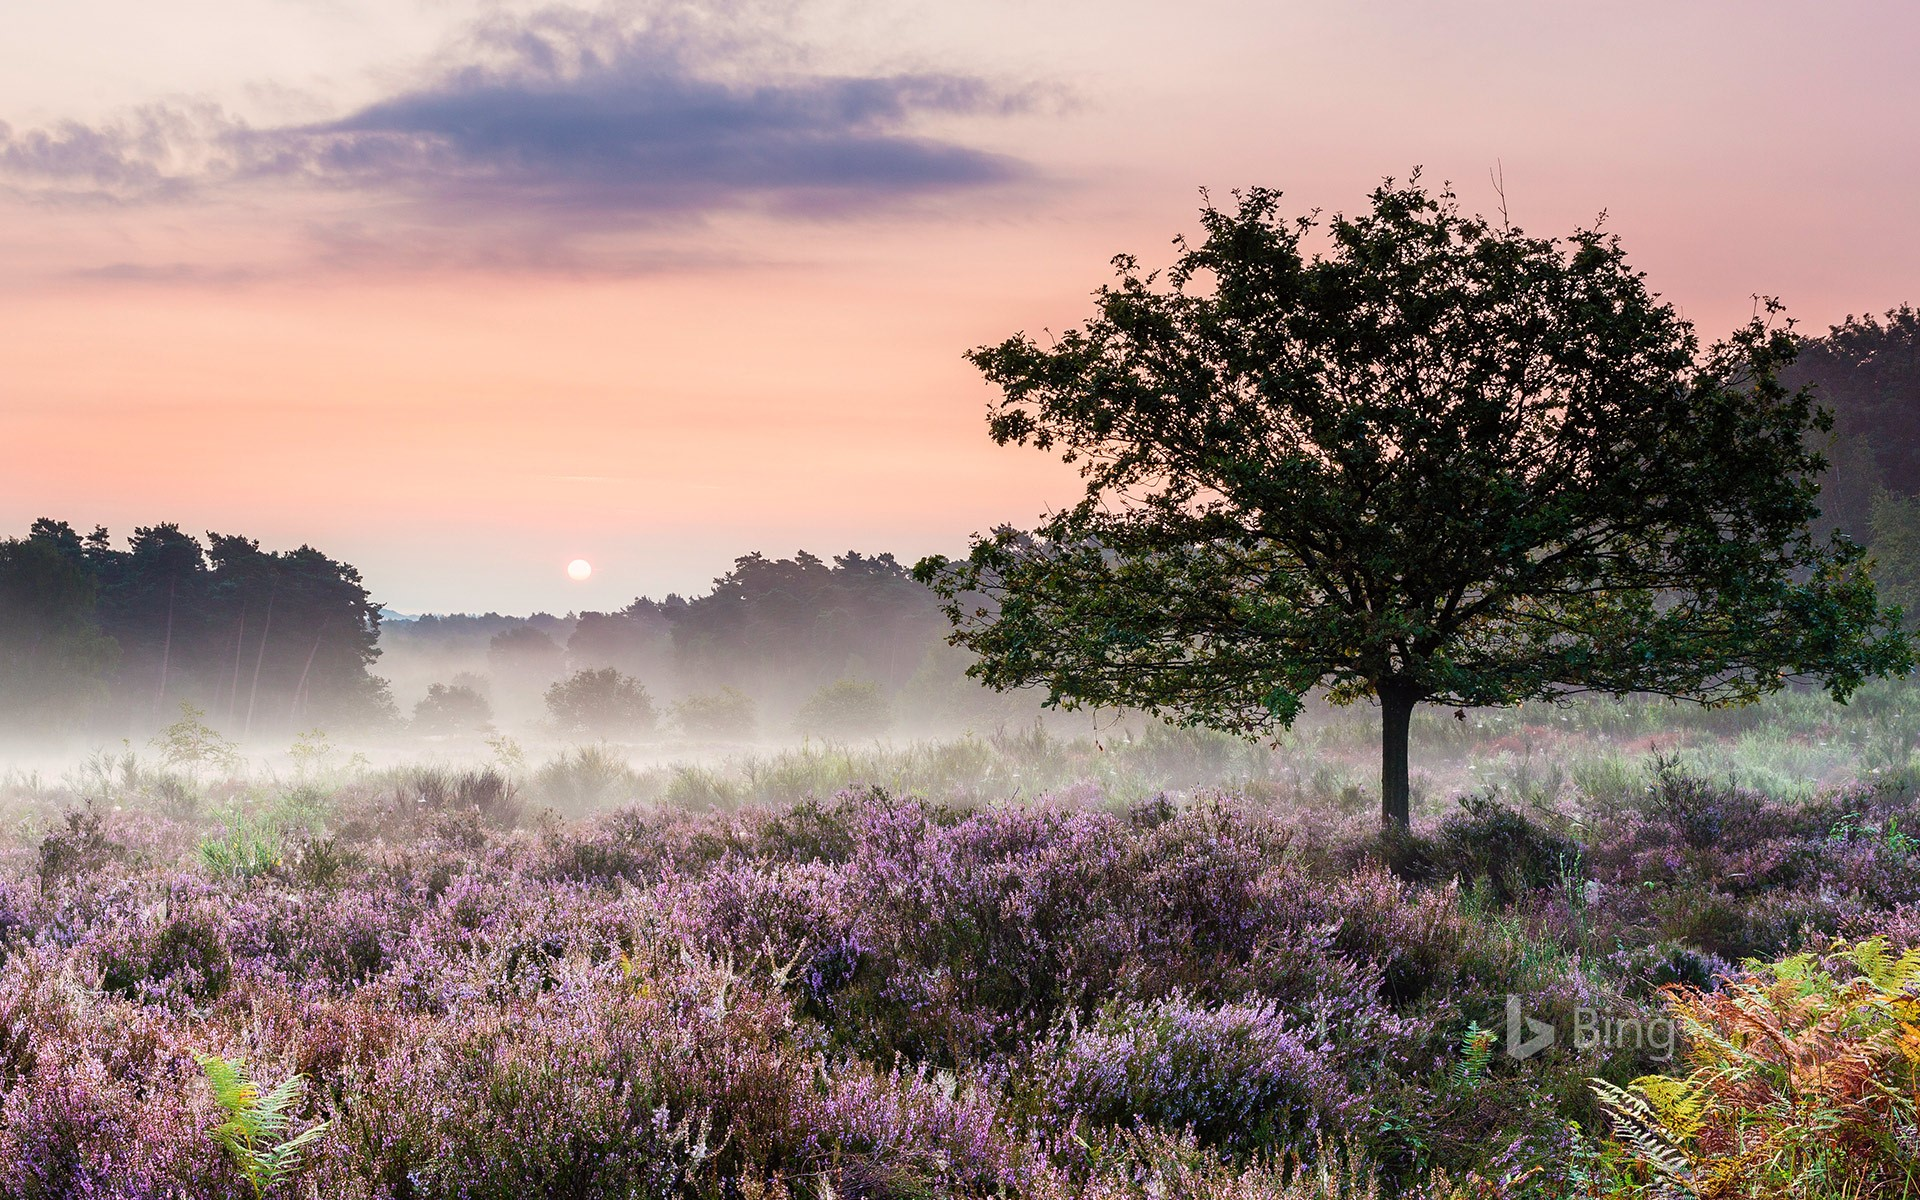 Heath blooming in Wahner Heide Nature Reserve in Troisdorf near Cologne, Germany